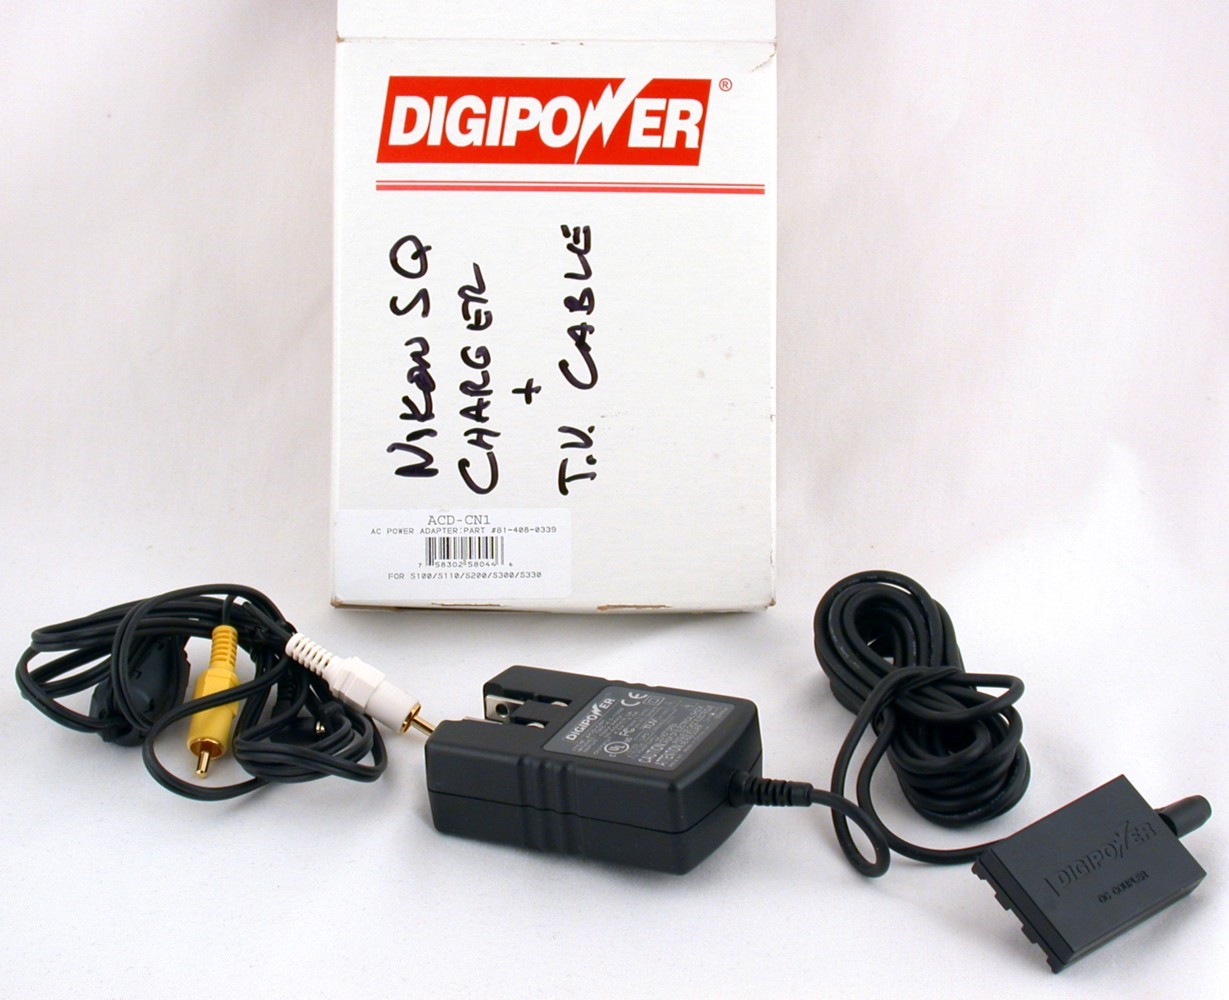 Digipower Battery Charger AC Power Adapter ACD-CN1 TV Cable